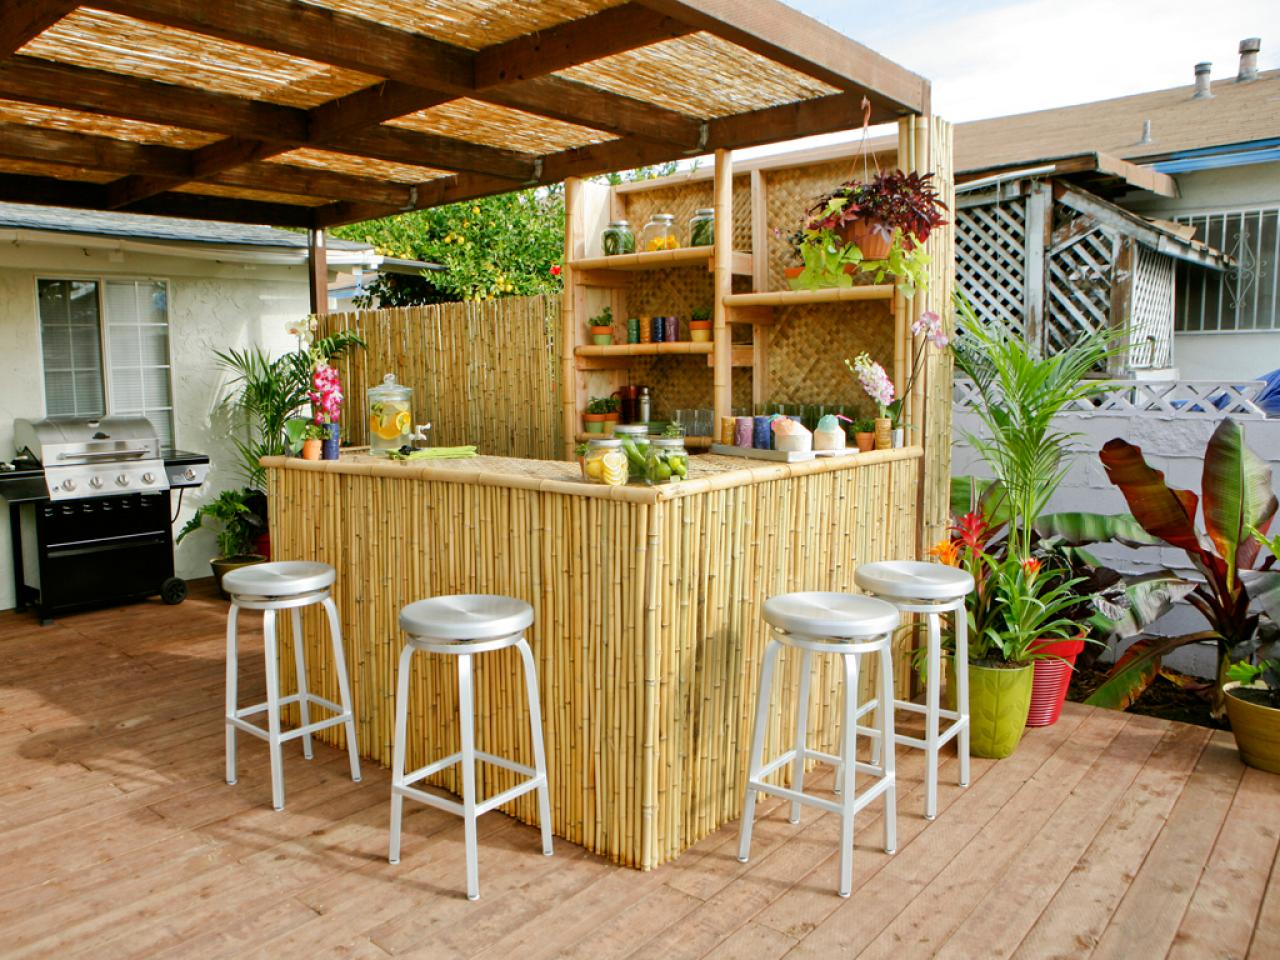 Backyard Kitchen And Bar : Outdoor Kitchen Bar Ideas Pictures, Tips & Expert Advice  Outdoor